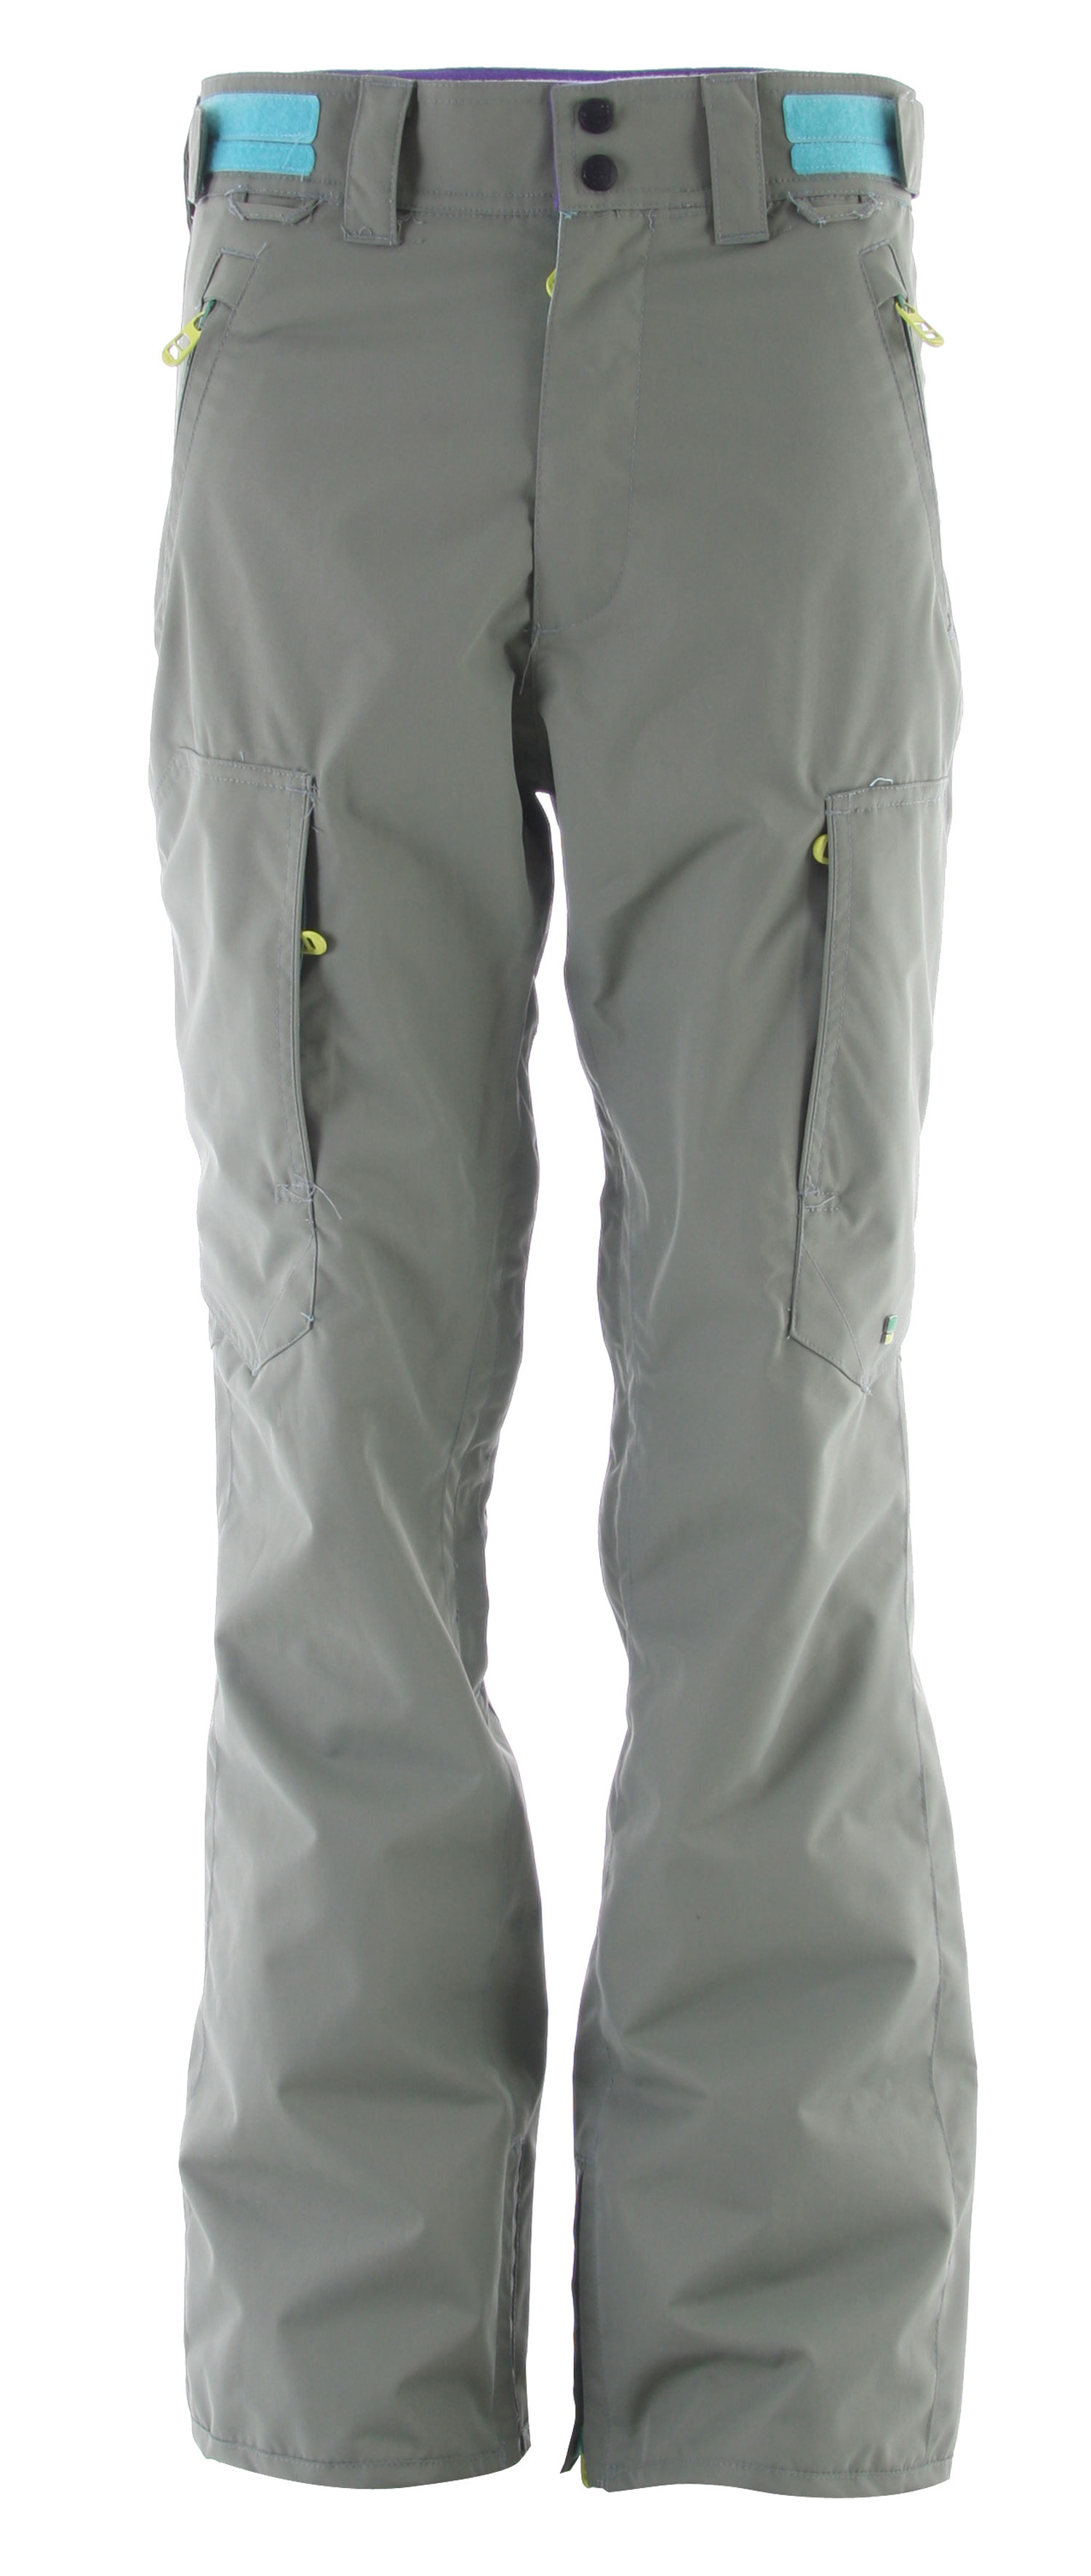 Snowboard Edison has been quoted as saying, I havent failed, Ive only found 10,000 ways that dont work. Well, he obviously has never woken up in a dumpster naked. Thats failure, no matter how you slice it. This 10k Bond Edison snowboard pant would come in handy on those mornings.Key Features of the Bond Edison Snowboard Pants: 10,000mm Waterproofing 10,000g Breathability Critical taped seams 14 taint getting hot inseam vents Stashed vents at bottom of cargo pockets Zippered accordion gusset No-scuff pant jack-up system Damp-ass eliminator - $89.95